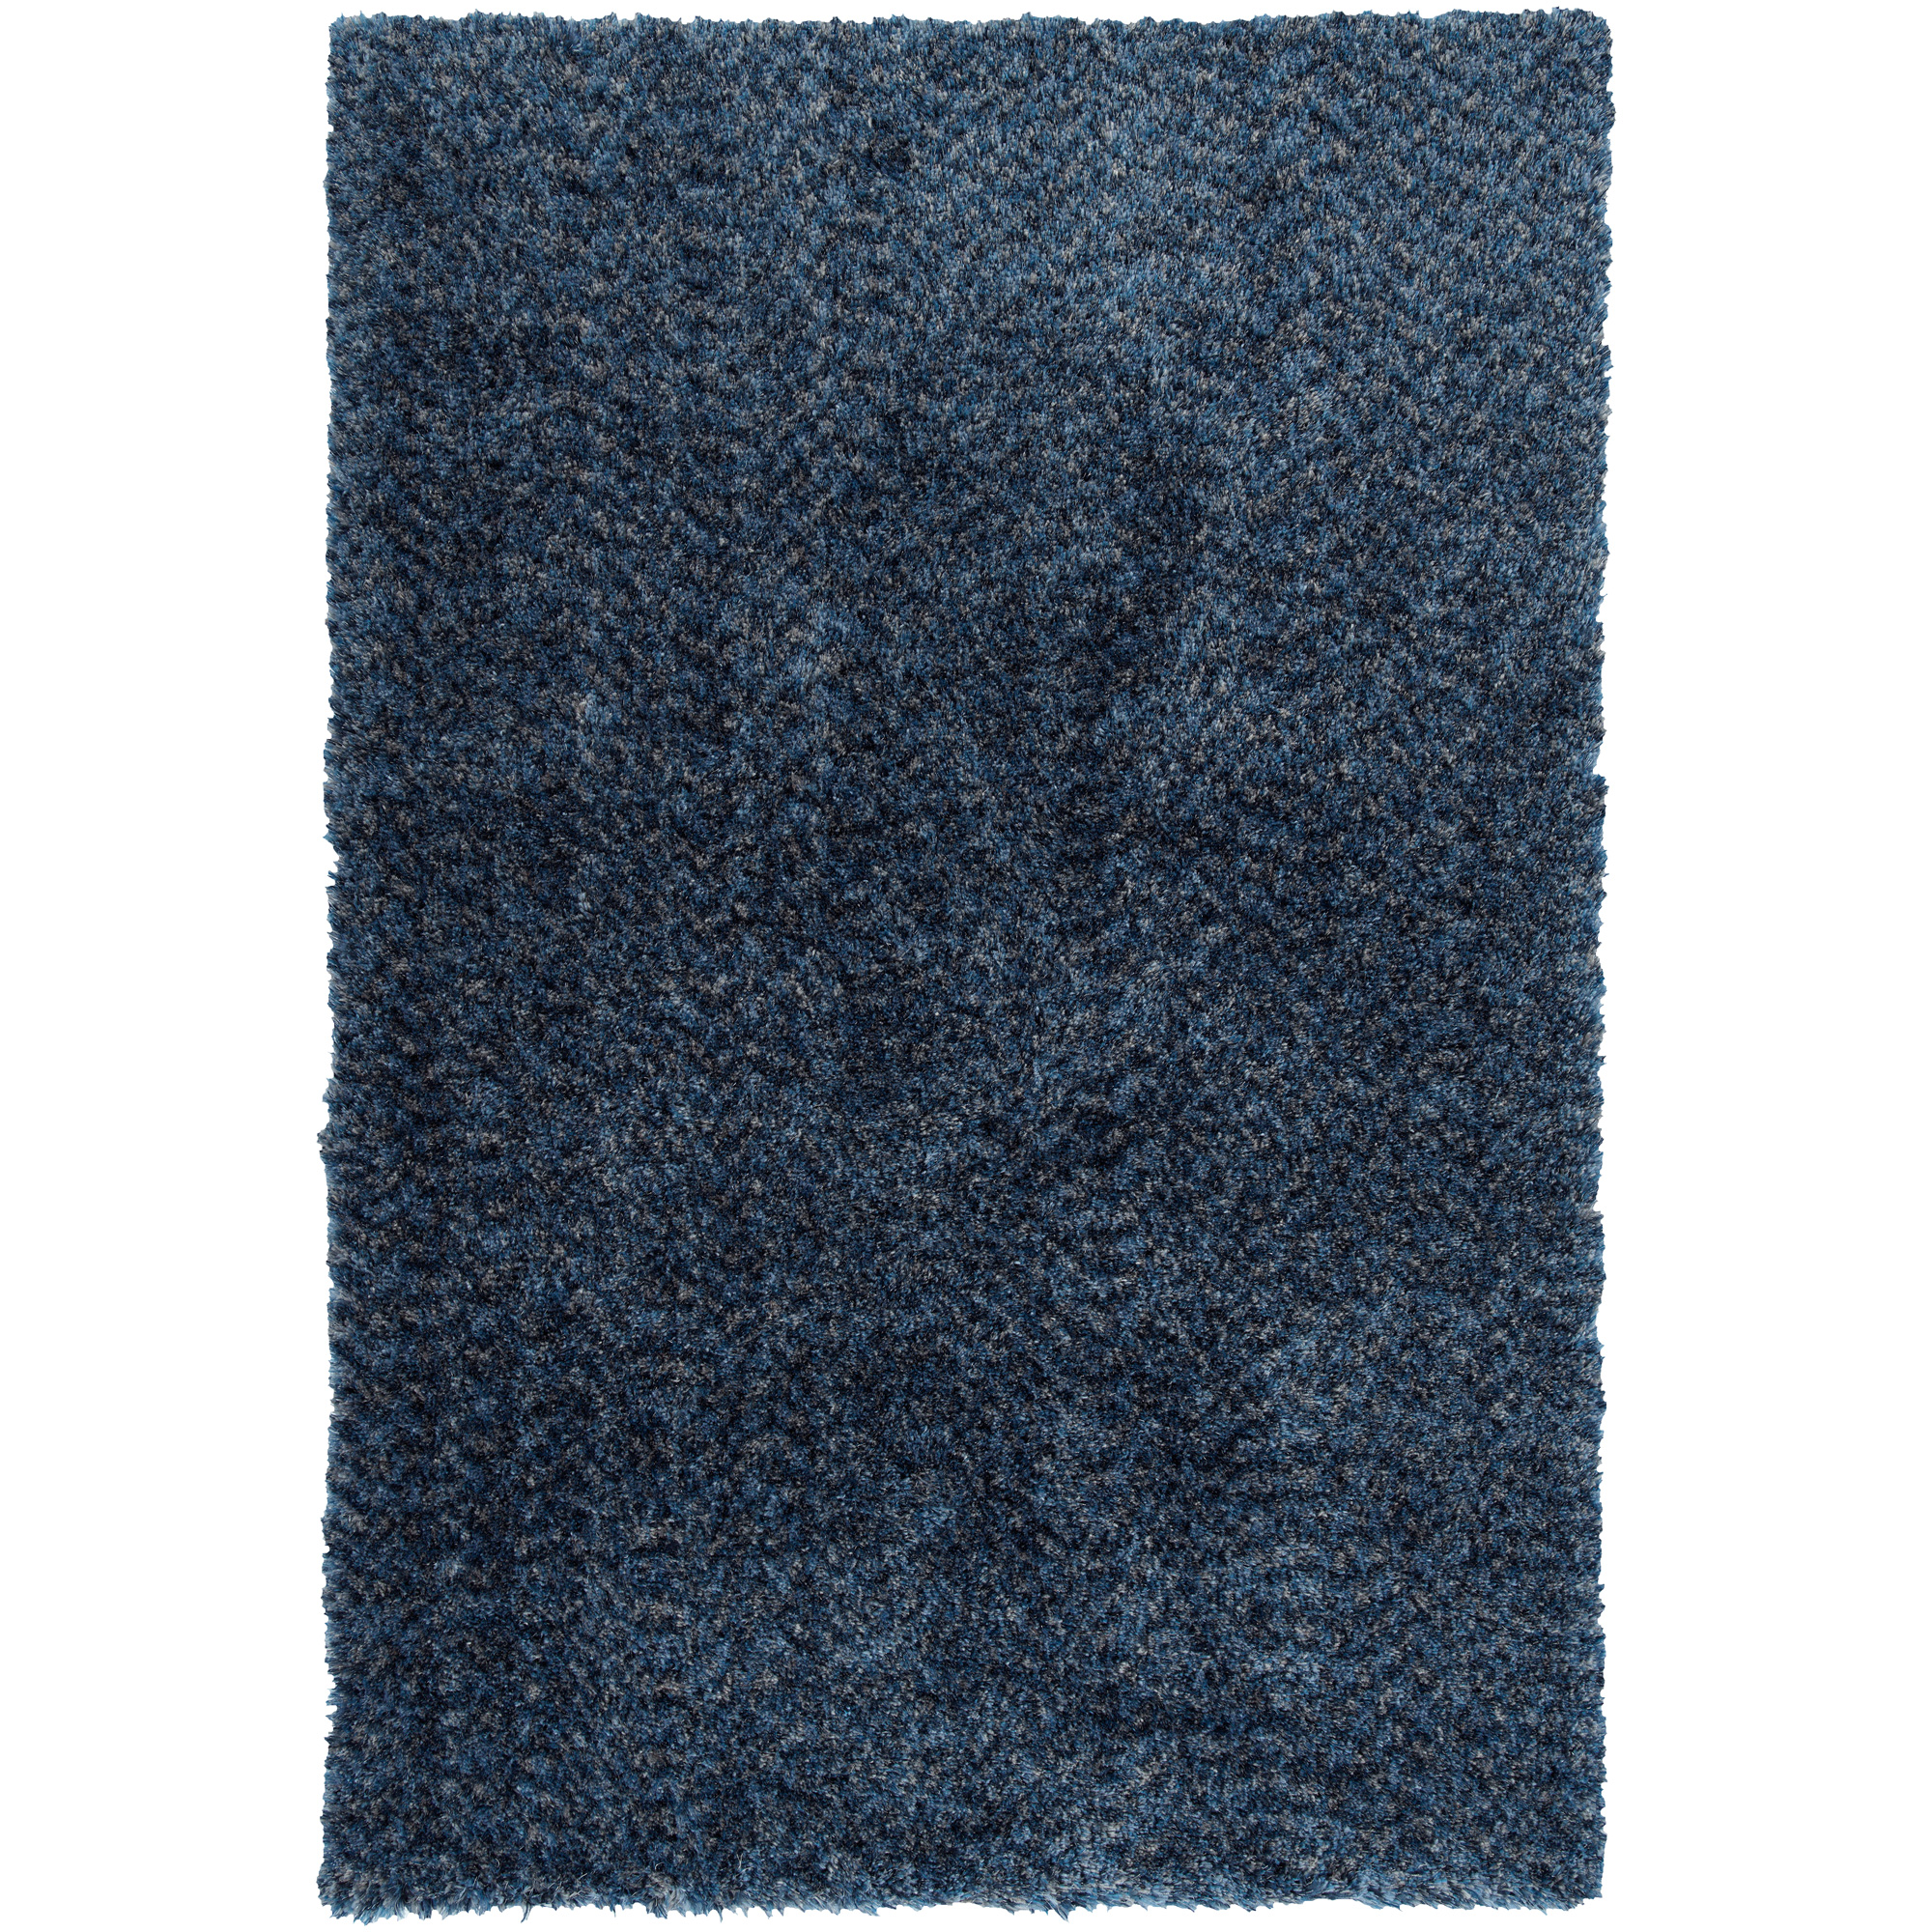 Dalyn Rug | Cabot Navy 8x10 Area Rug